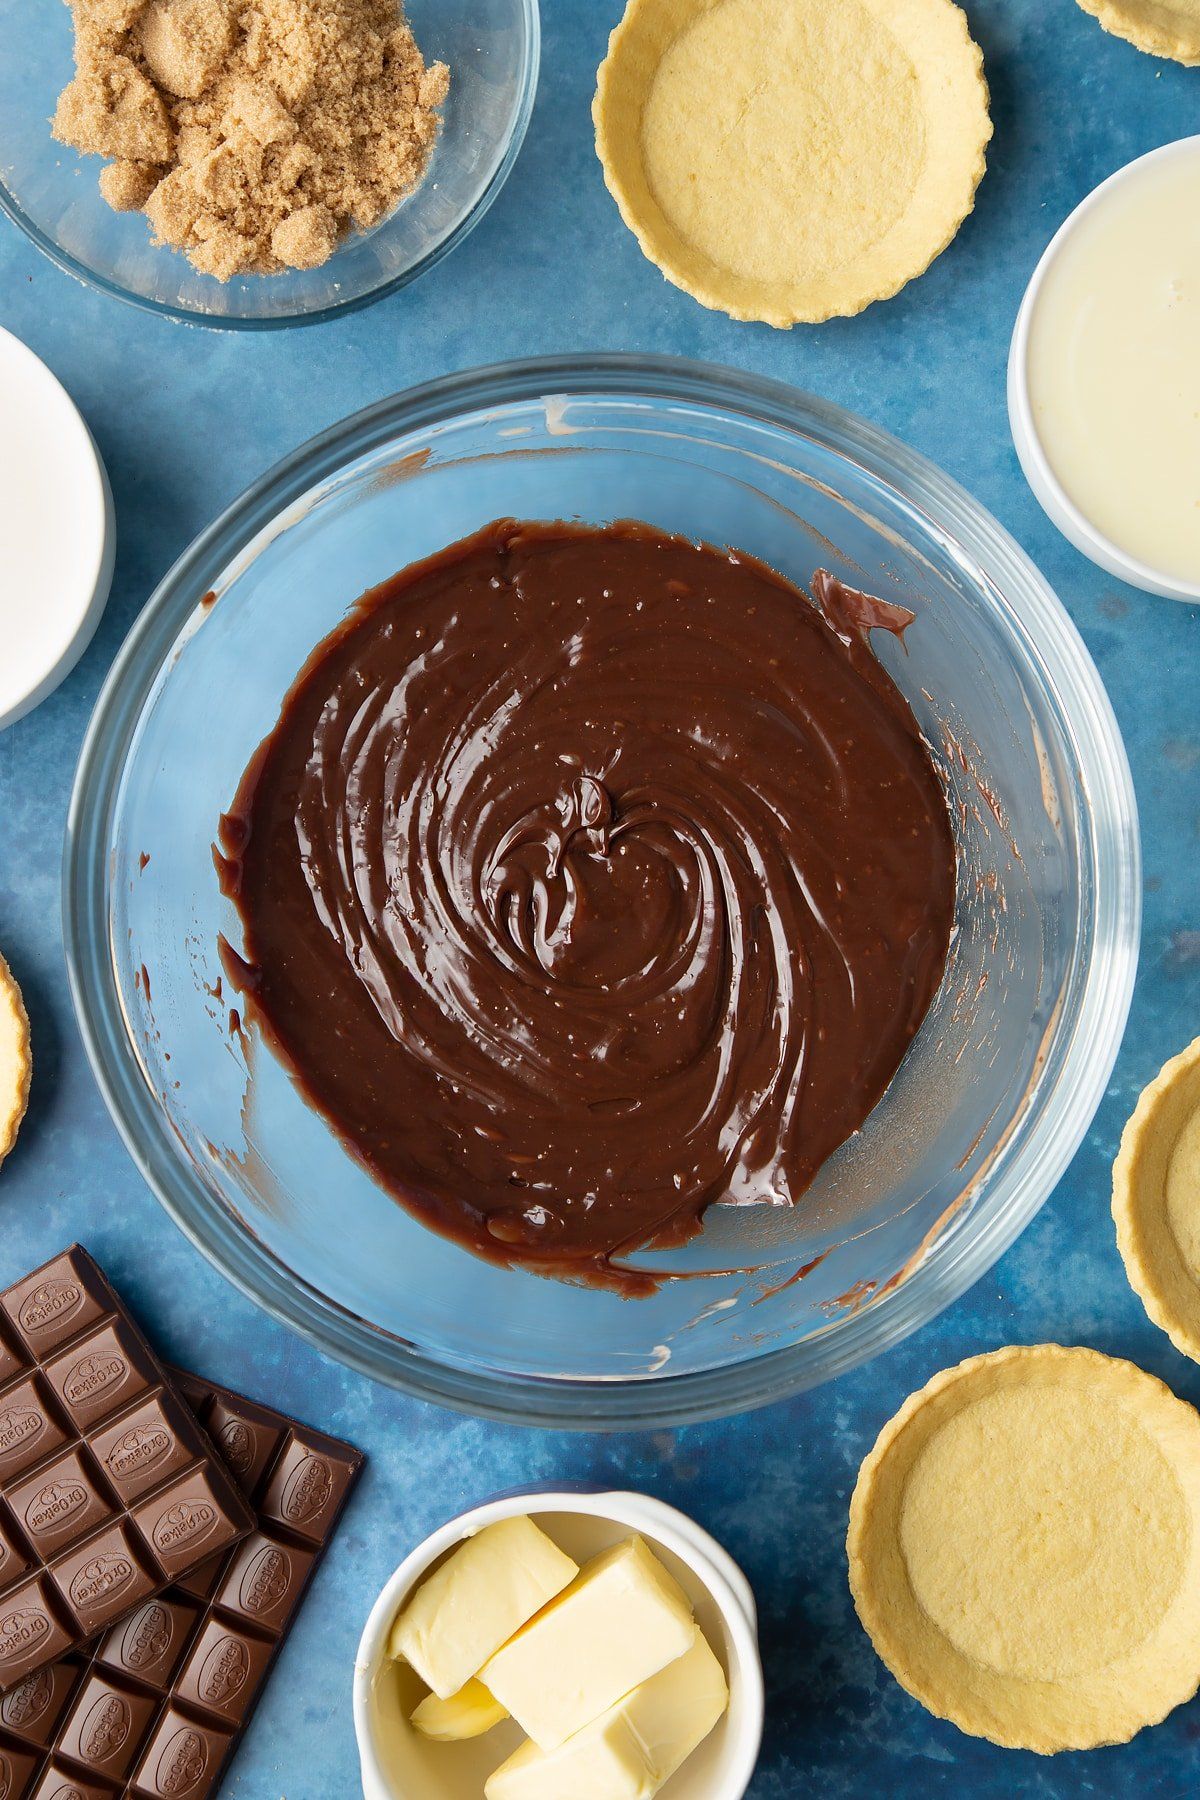 Freshly made milk chocolate ganache in a large mixing bowl. Ingredients to make mini chocolate tarts surround the bowl.